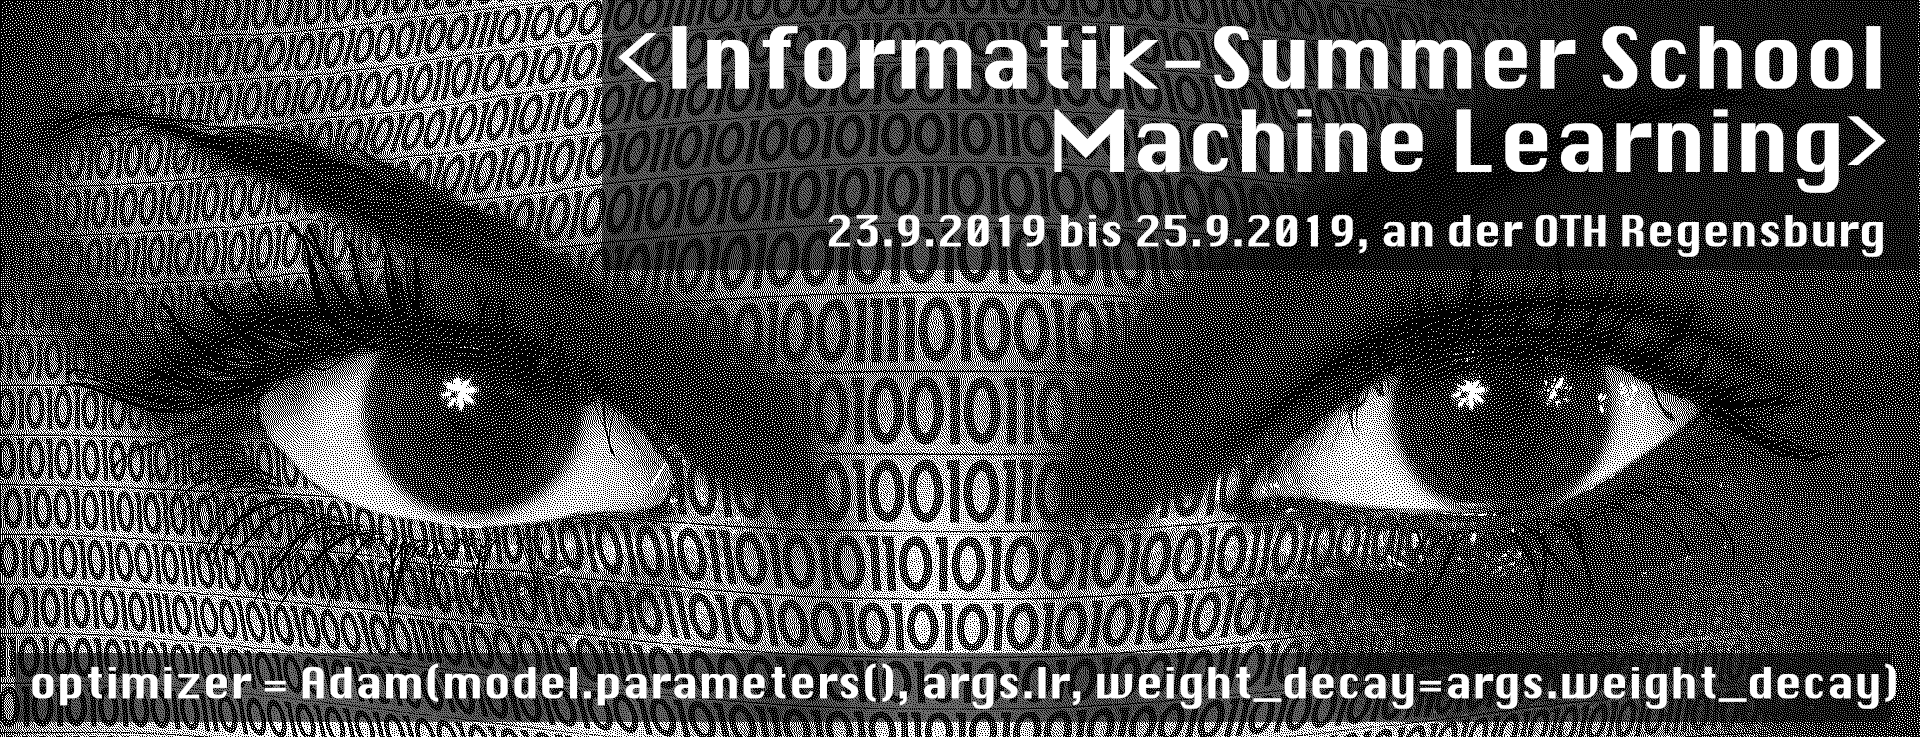 Informatik-Summerschool Machine Learning